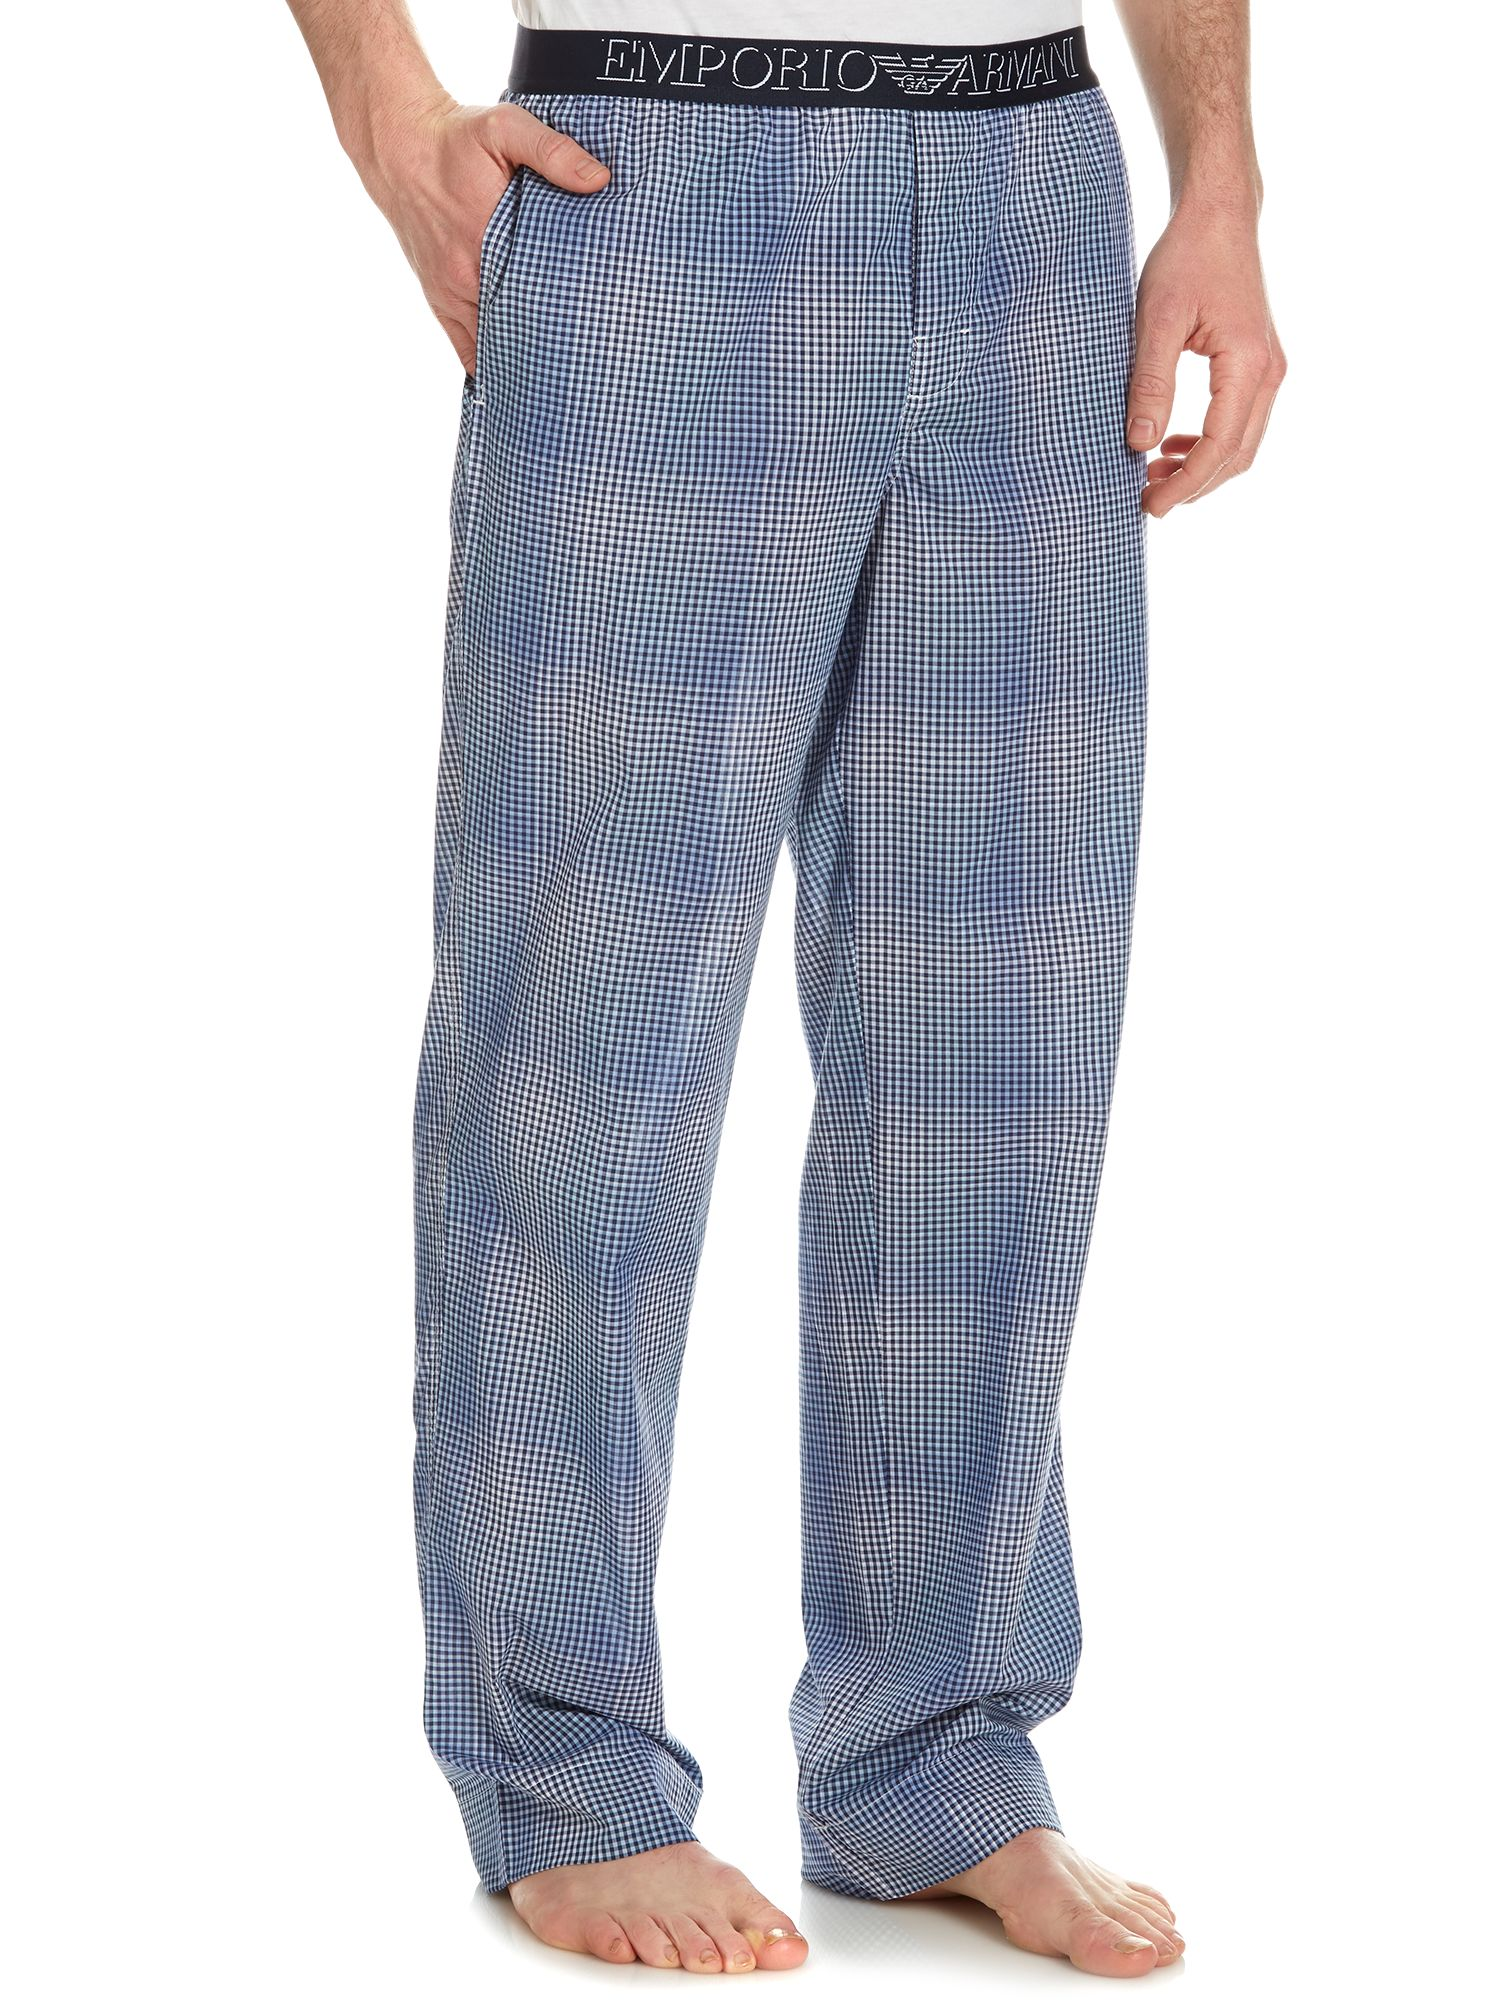 Woven gingham nightwear trouser